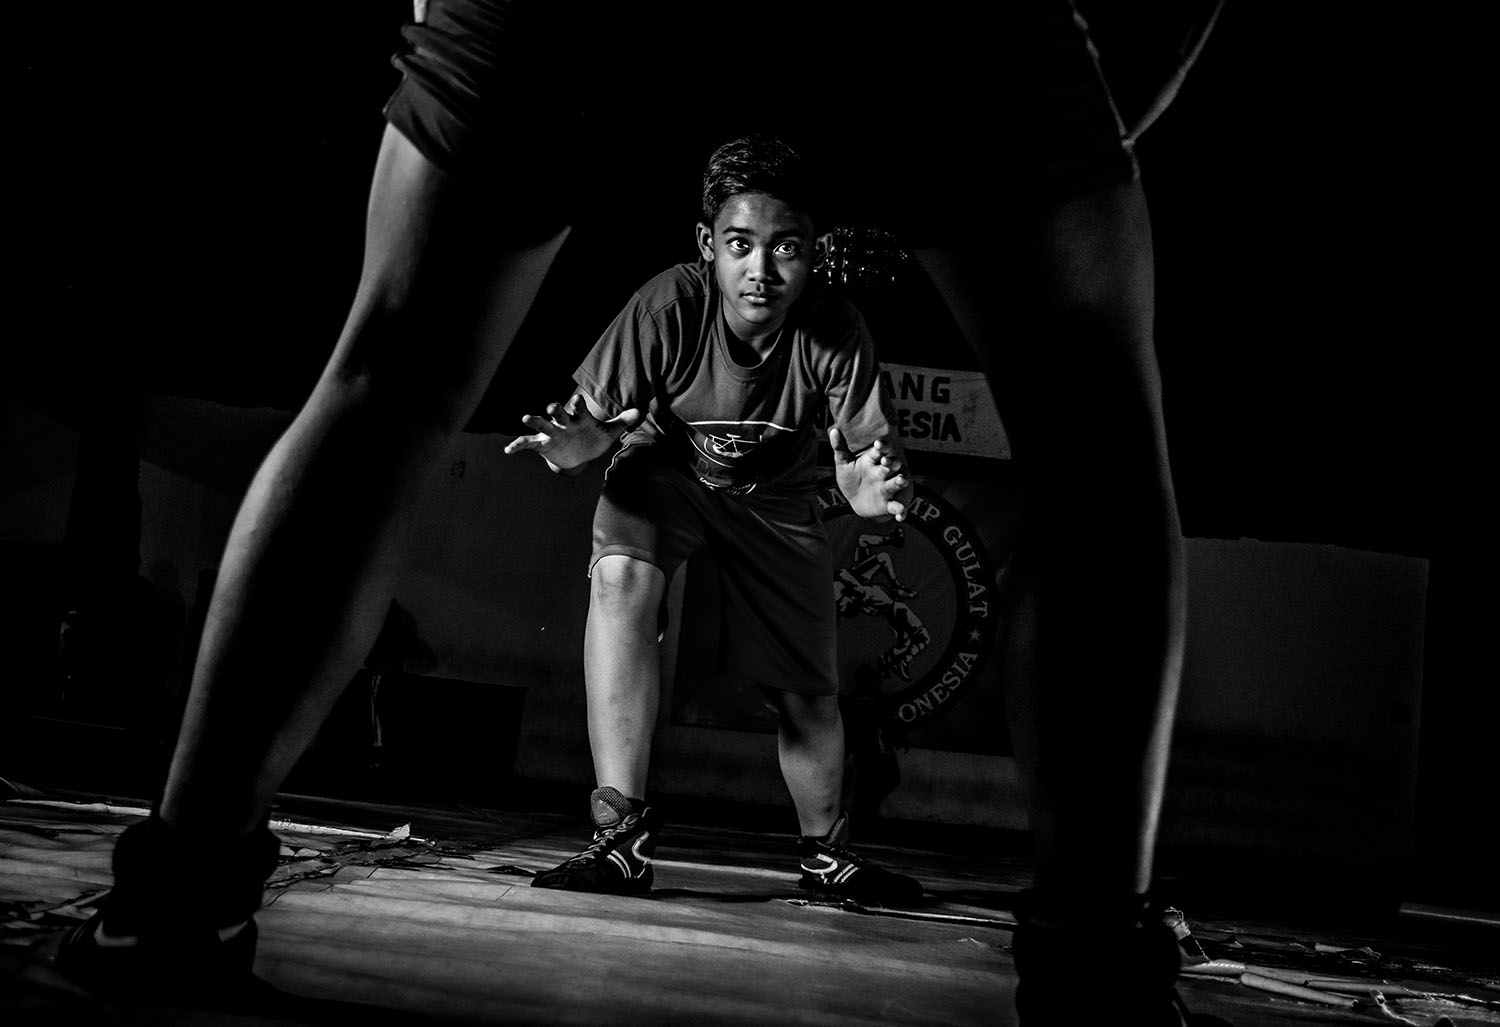 Dias Aditya, 15, learns an attack movement. He has been attending the Rachman Wrestling Camp for a year. JP/Aman Rochman